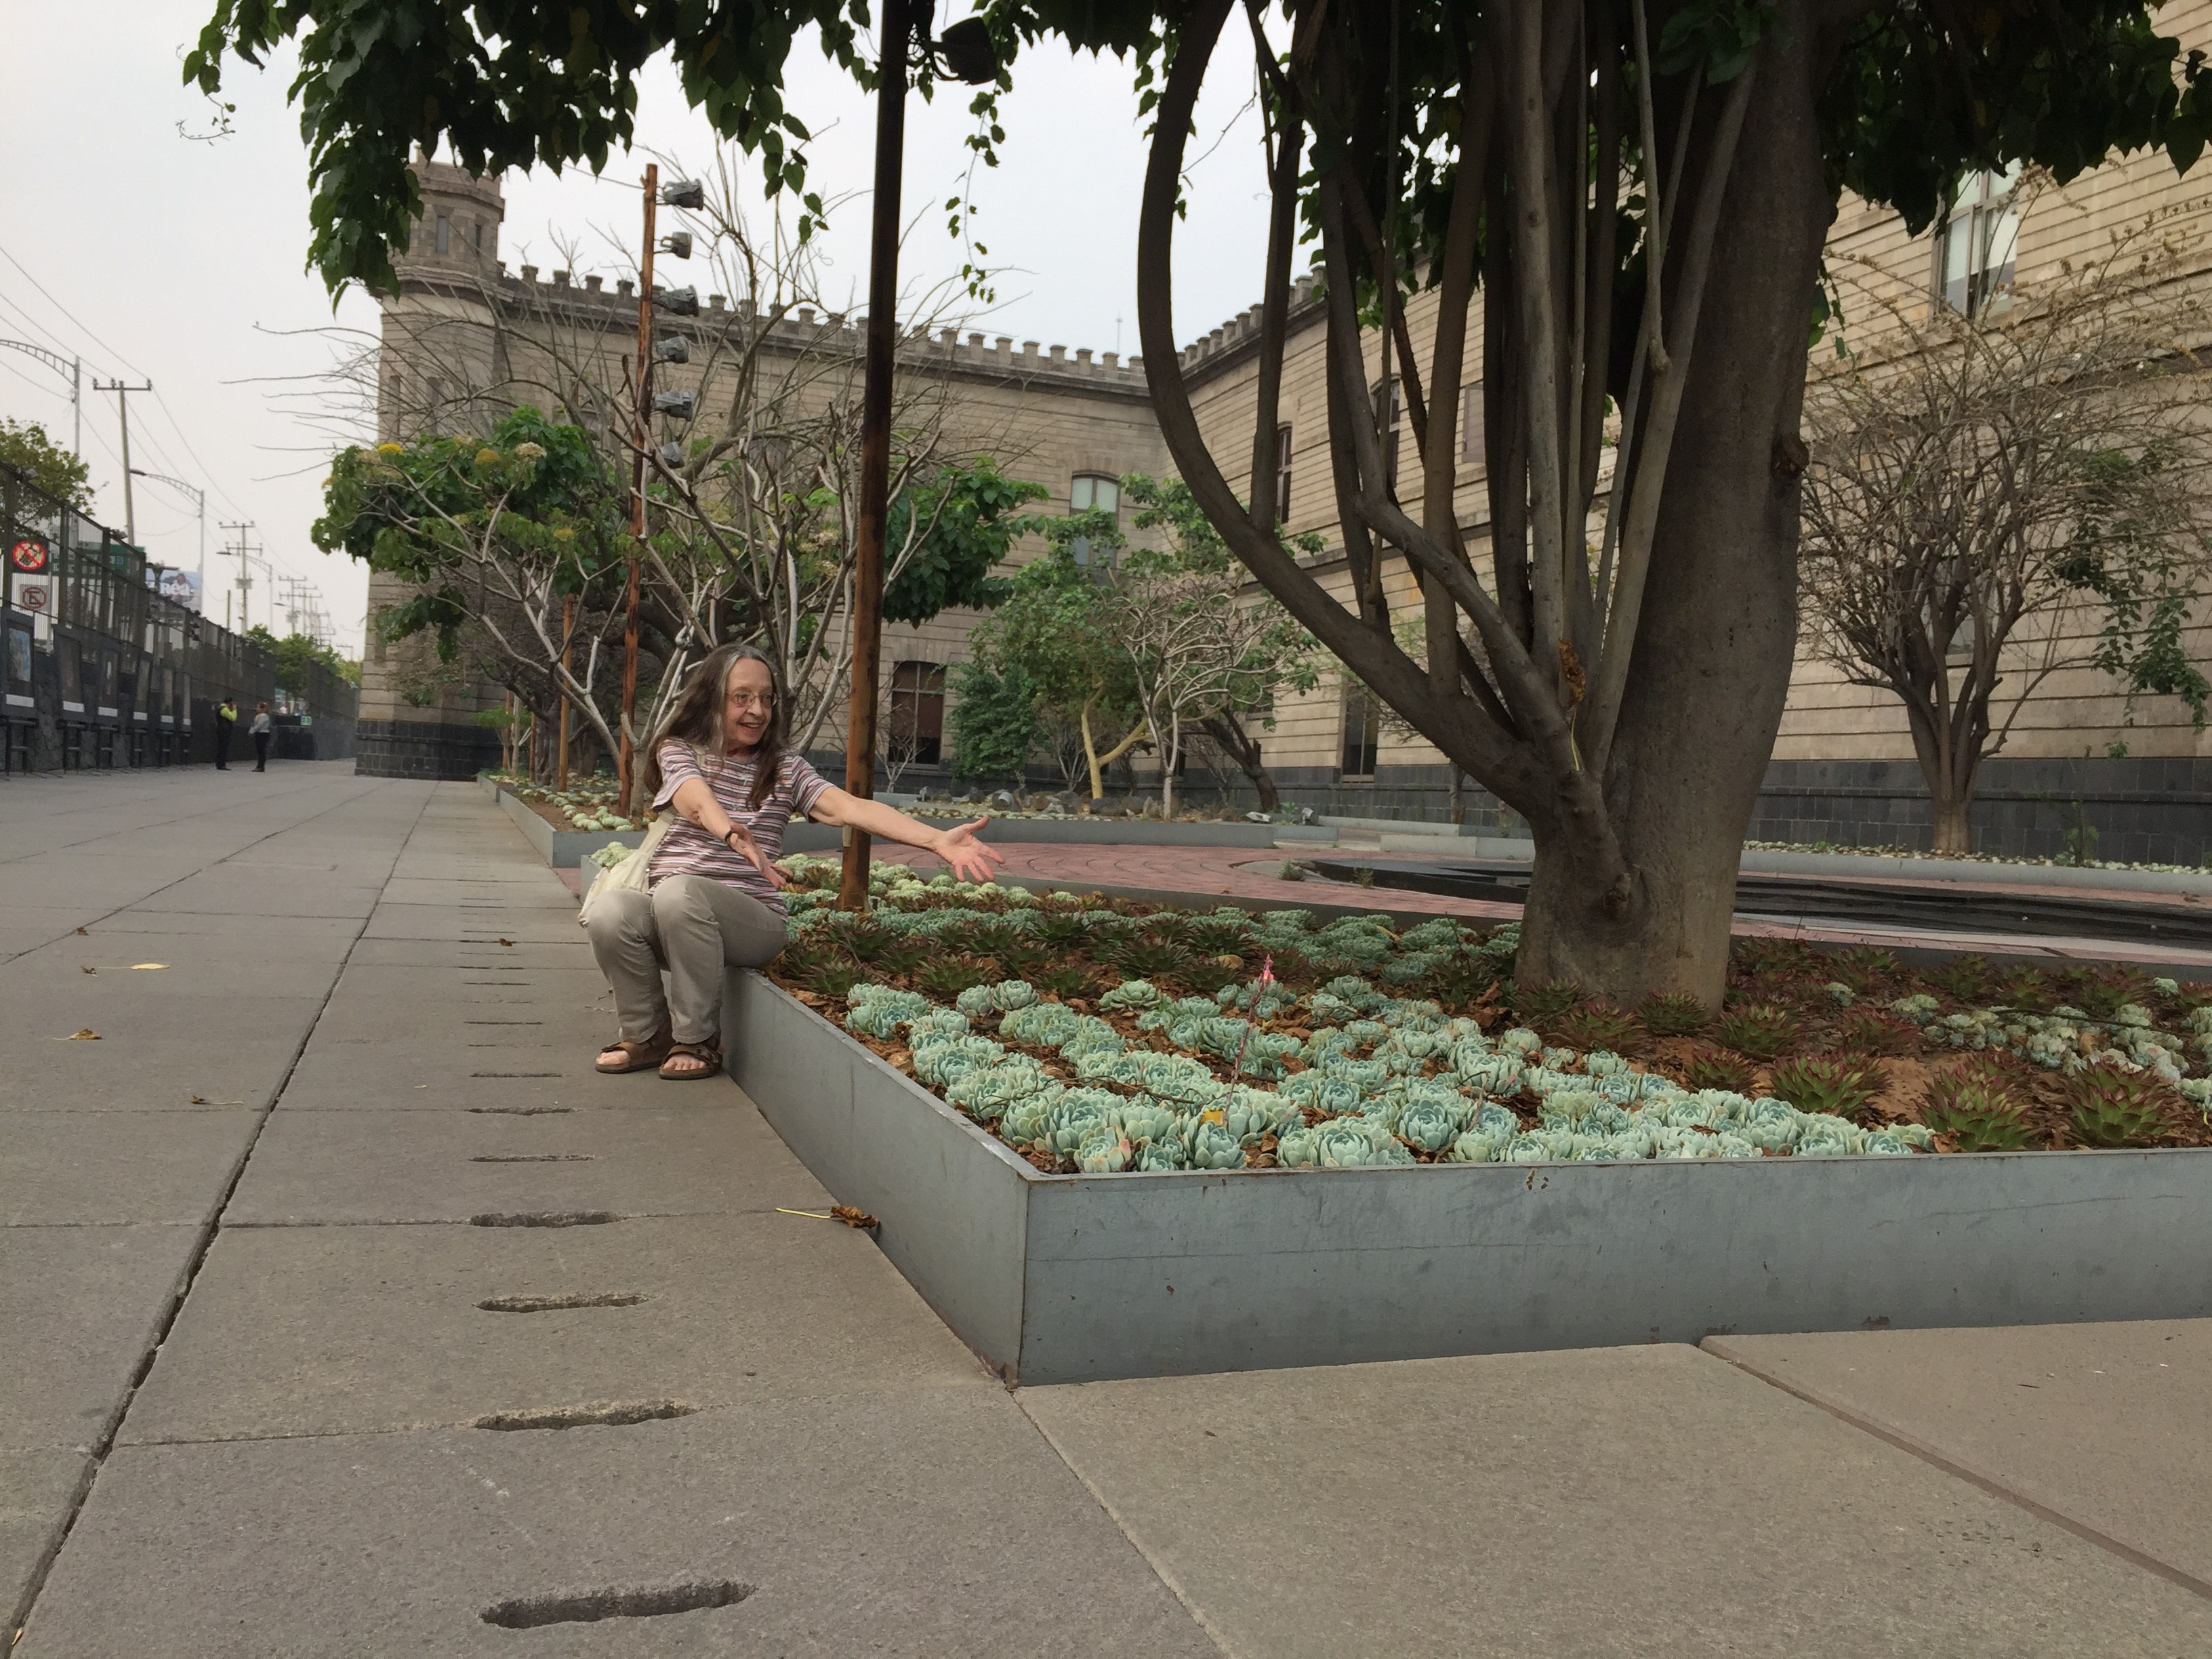 Researcher viewing cacti in Mexico City